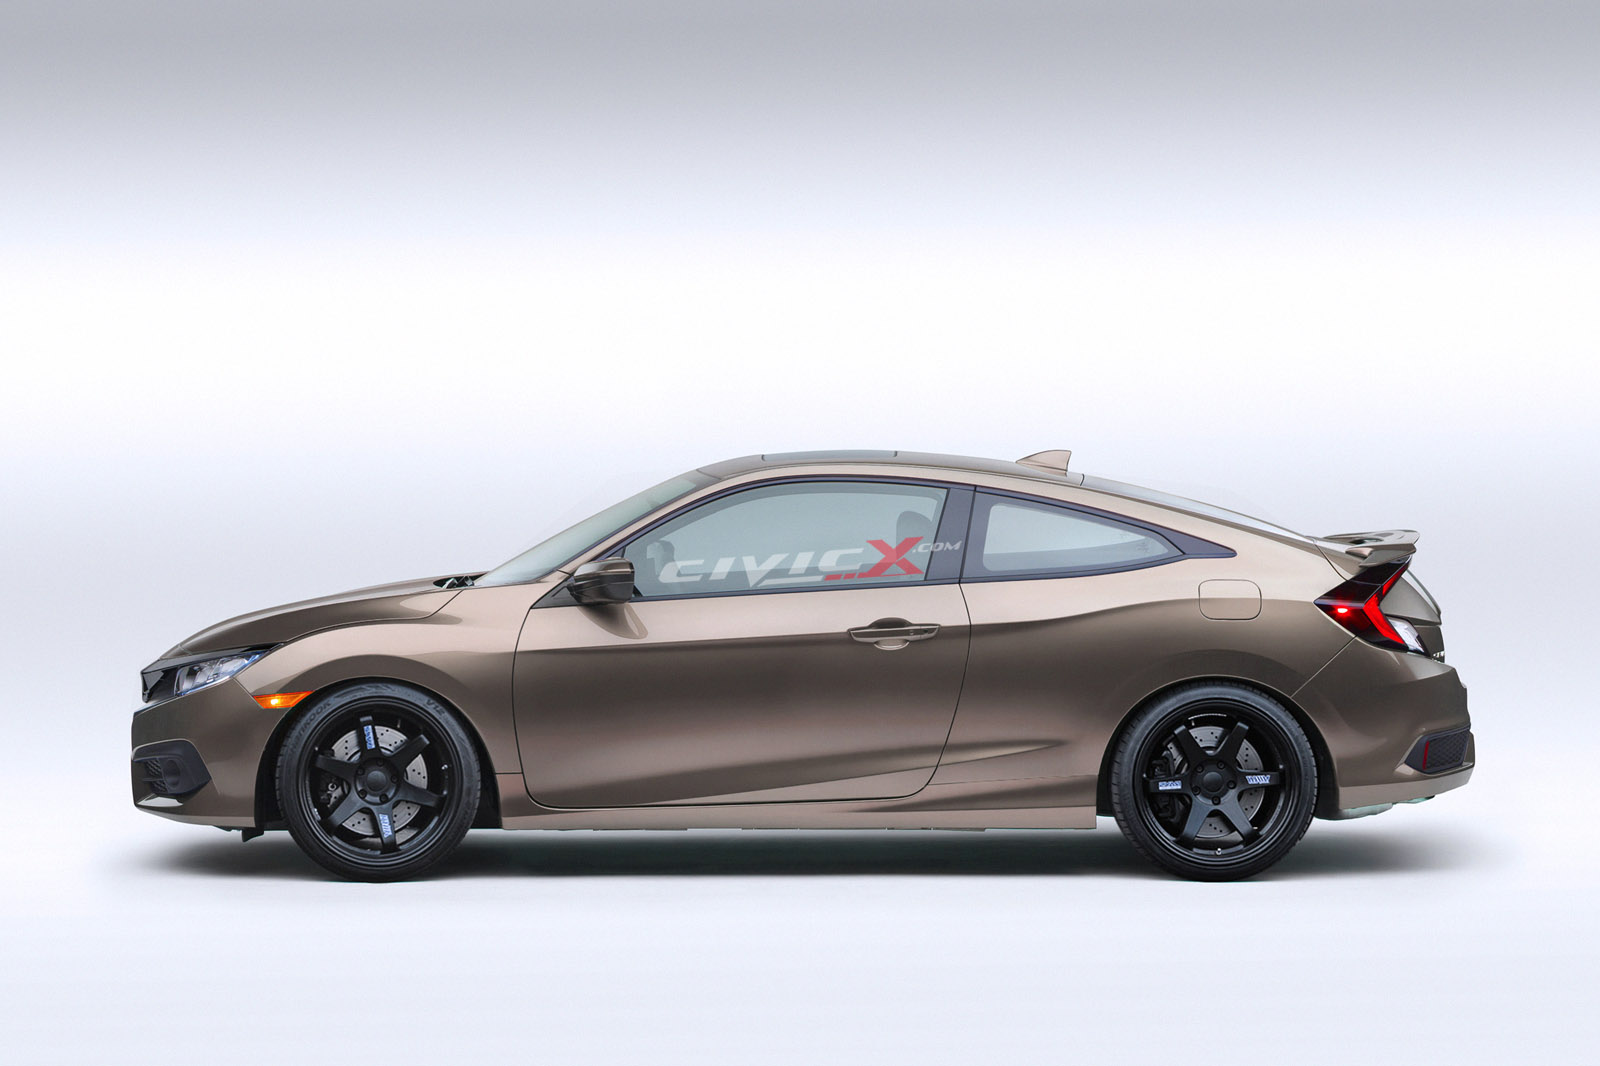 modified-2016-civic-coupe-aftermarketwheels-7.jpg